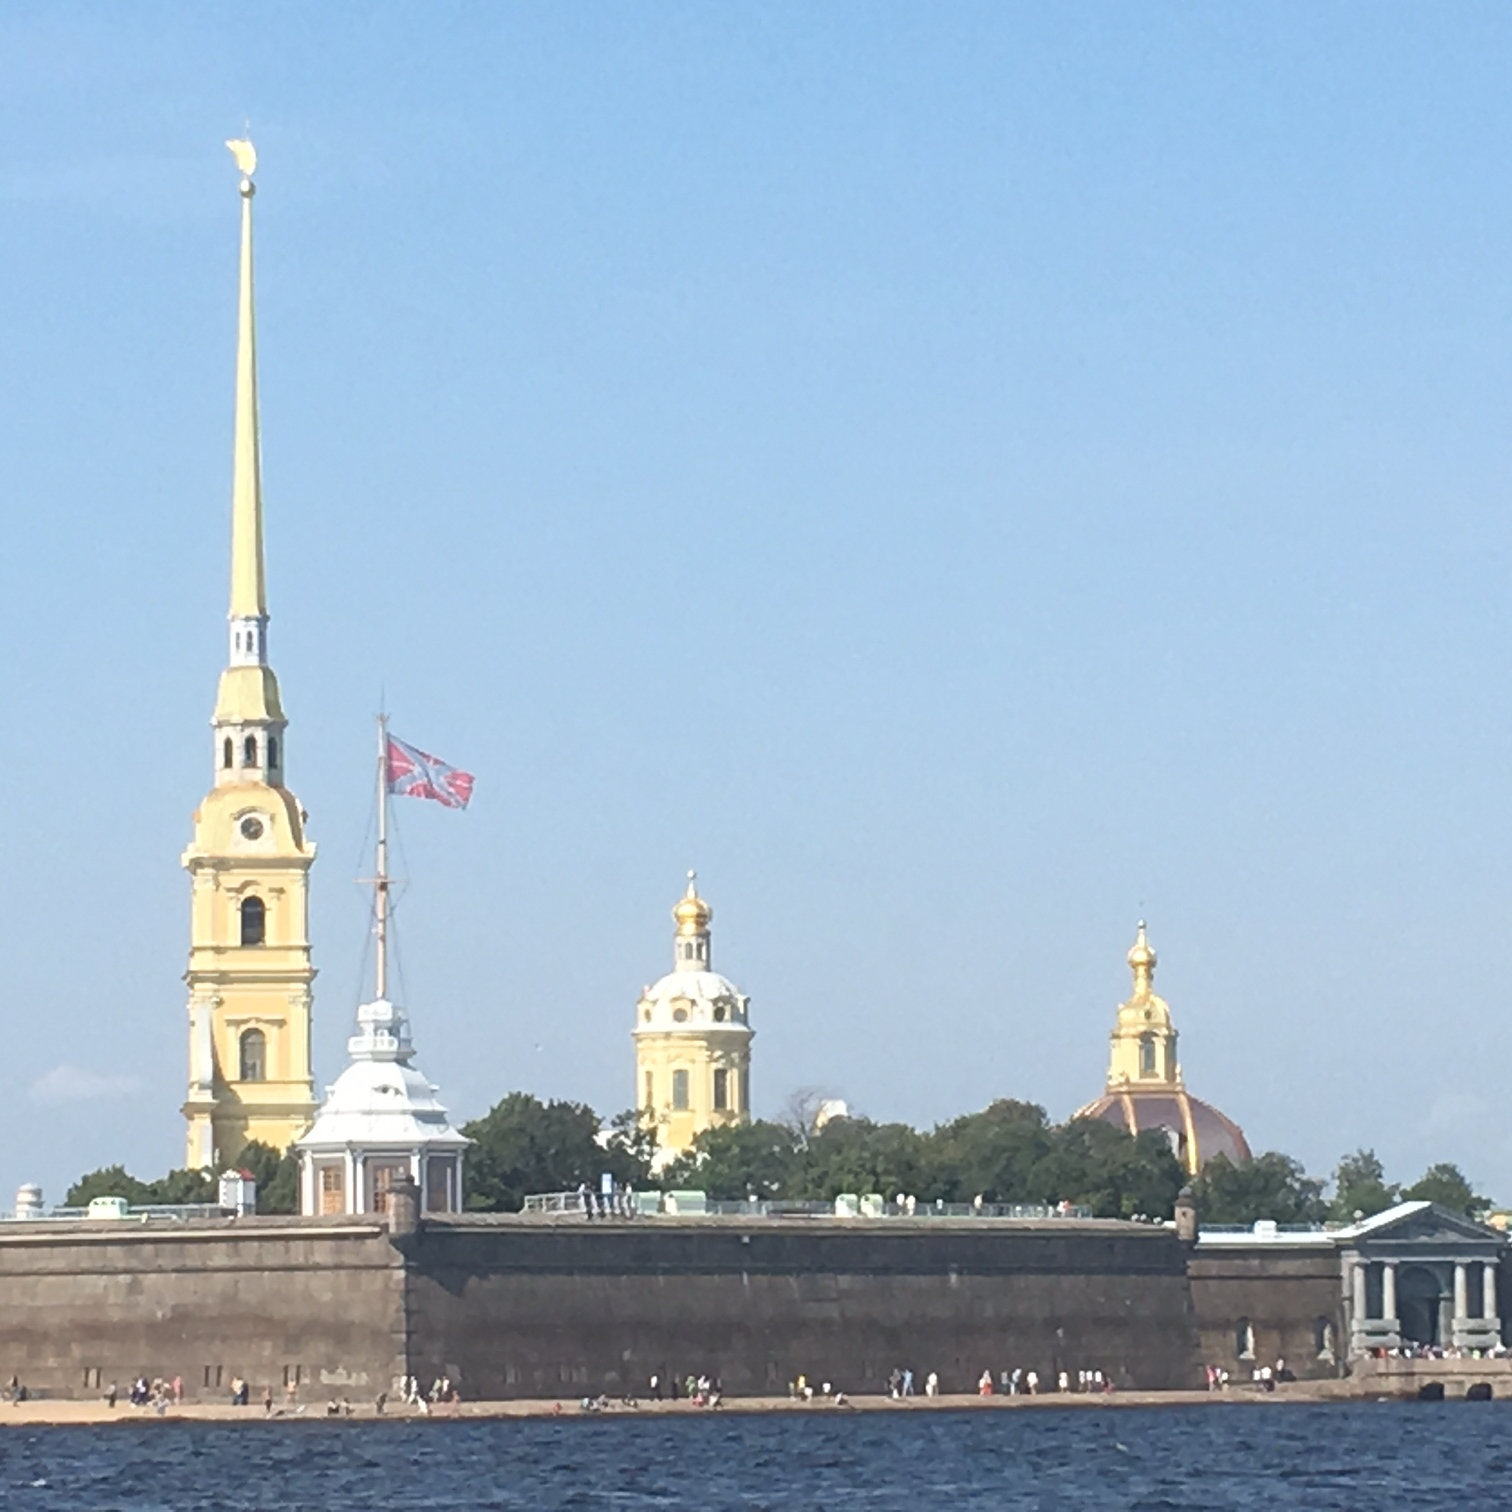 St Peter and Paul's Fortress, St Petersburg by The Doubtful Traveller